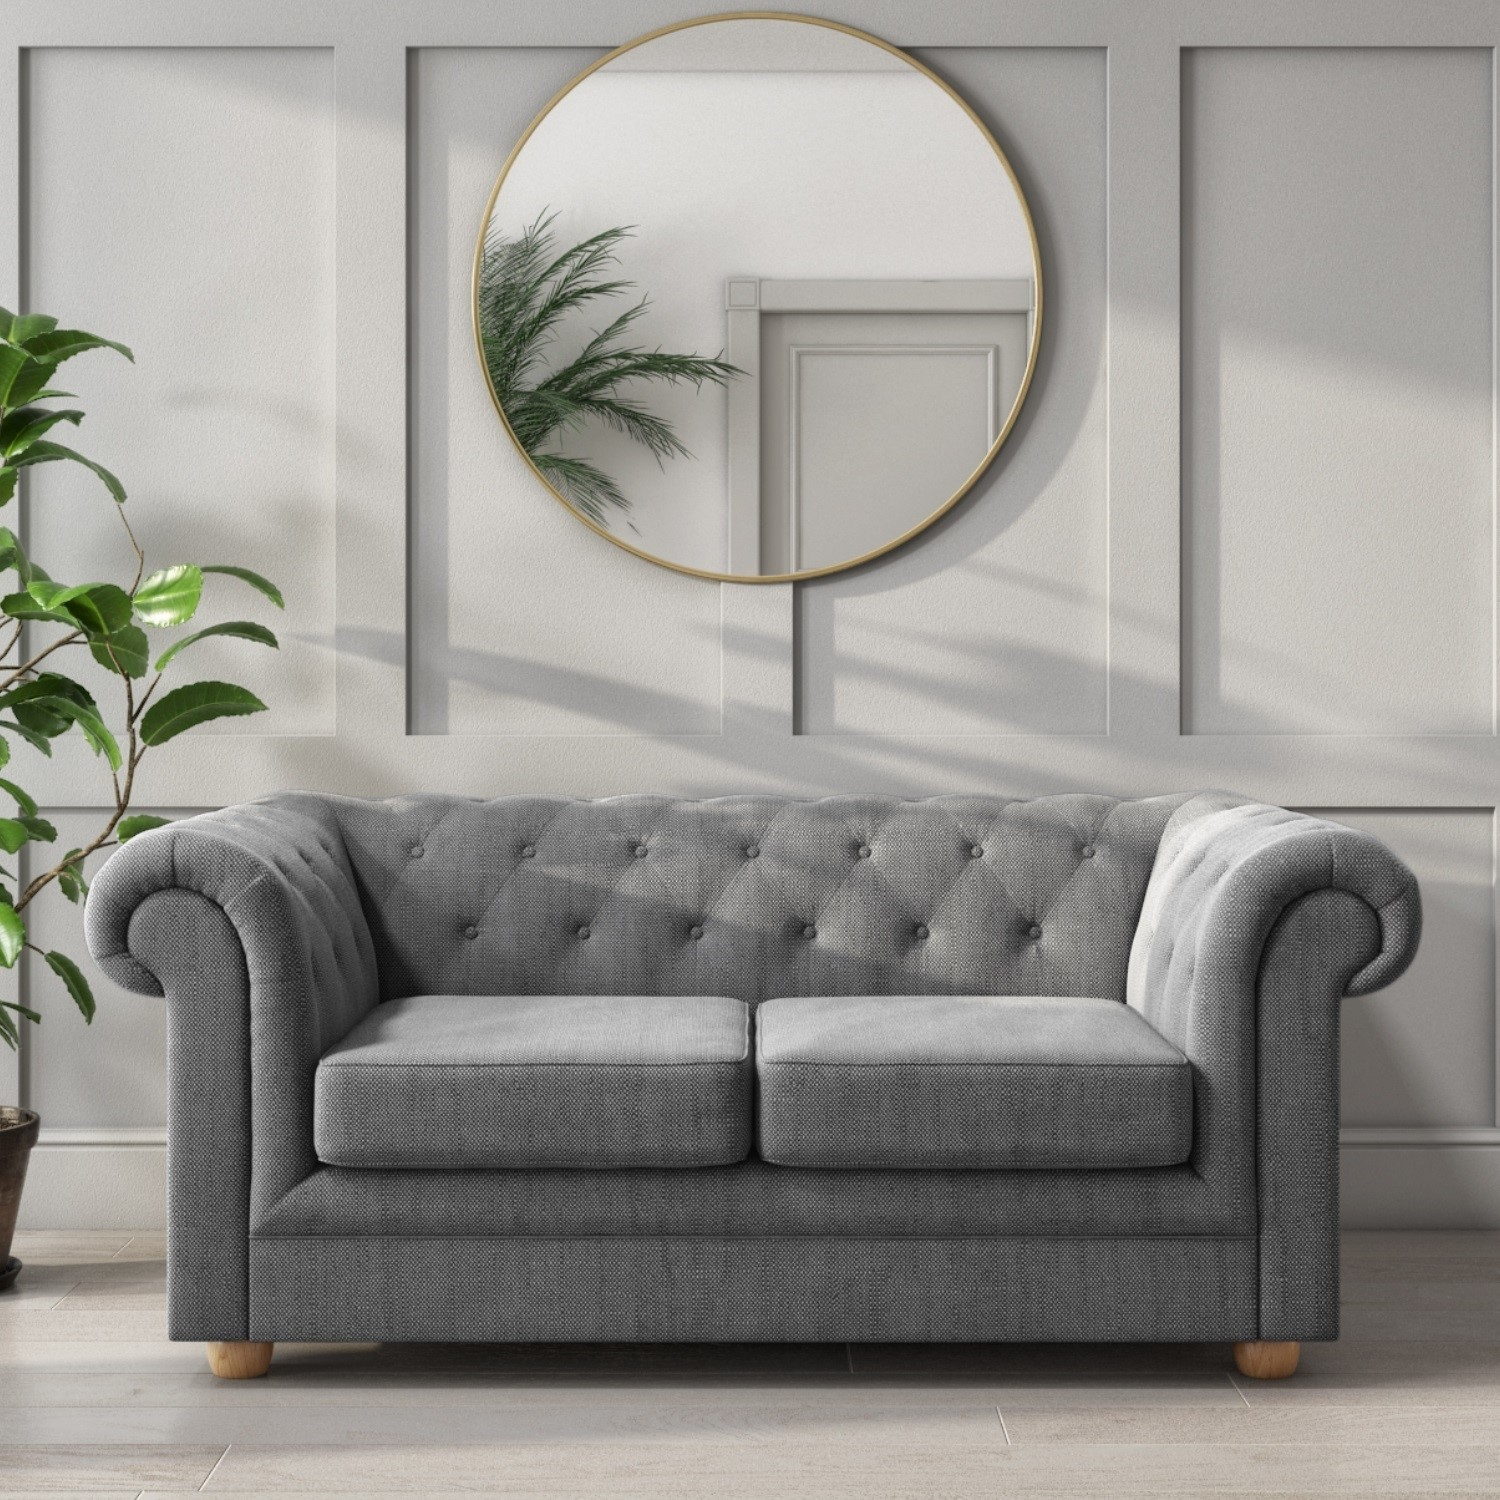 Bronte 2 Seater Chesterfield Sofa in Grey Fabric